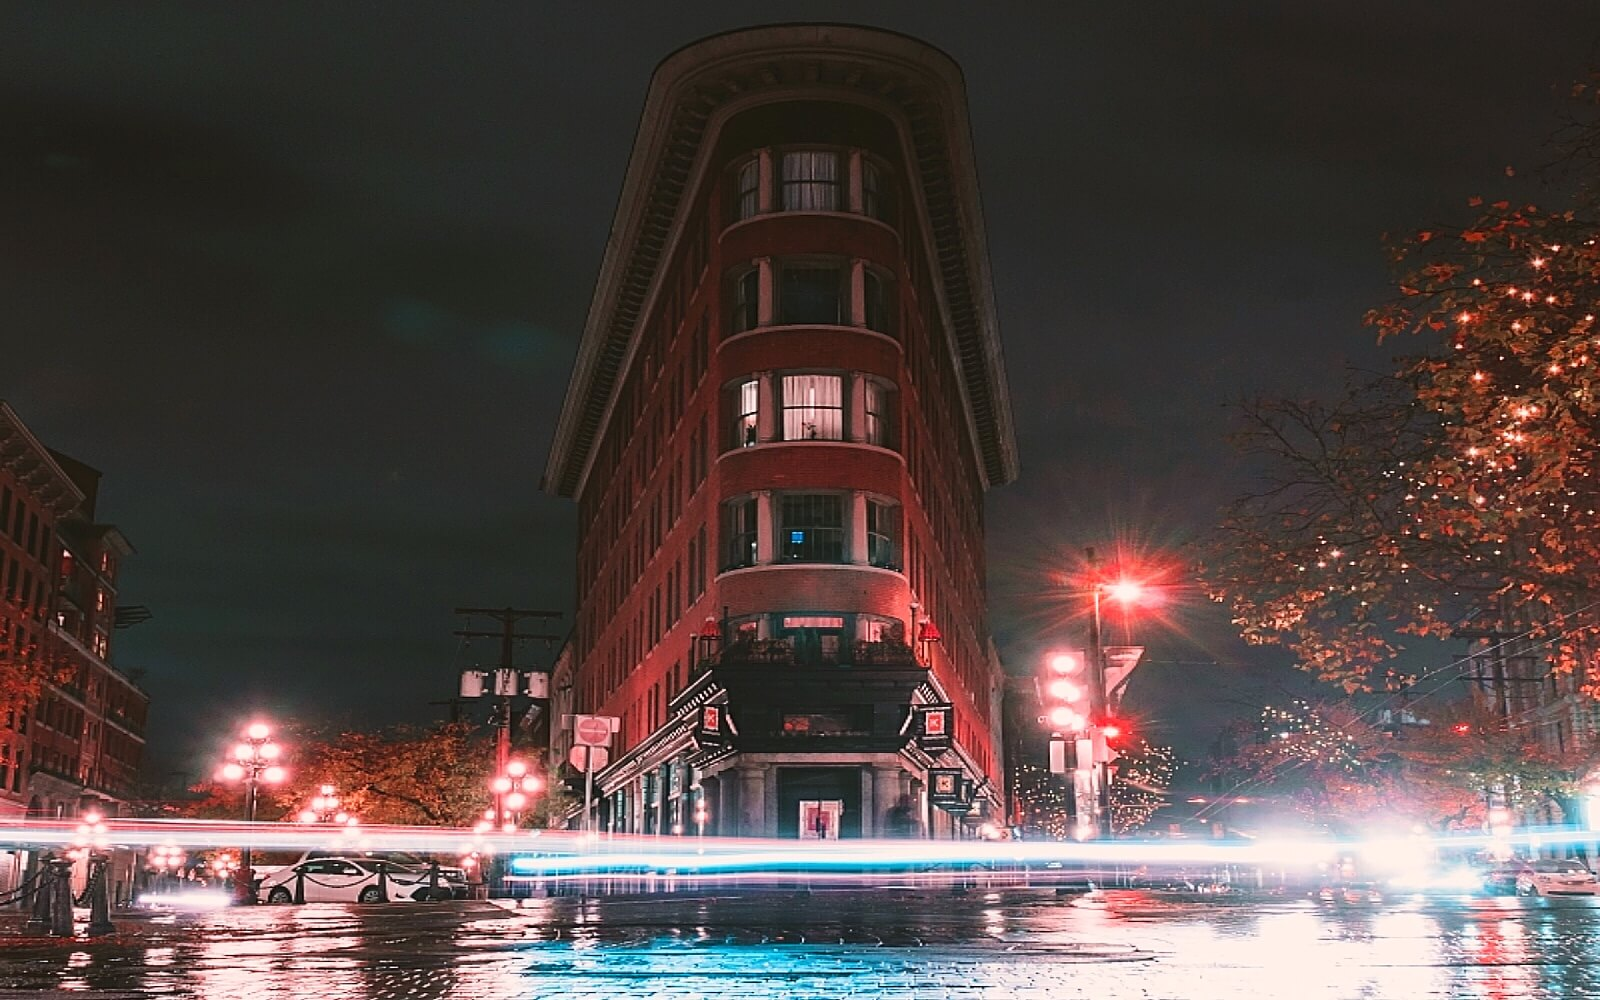 The Flatiron Building in Gastown, Vancouver